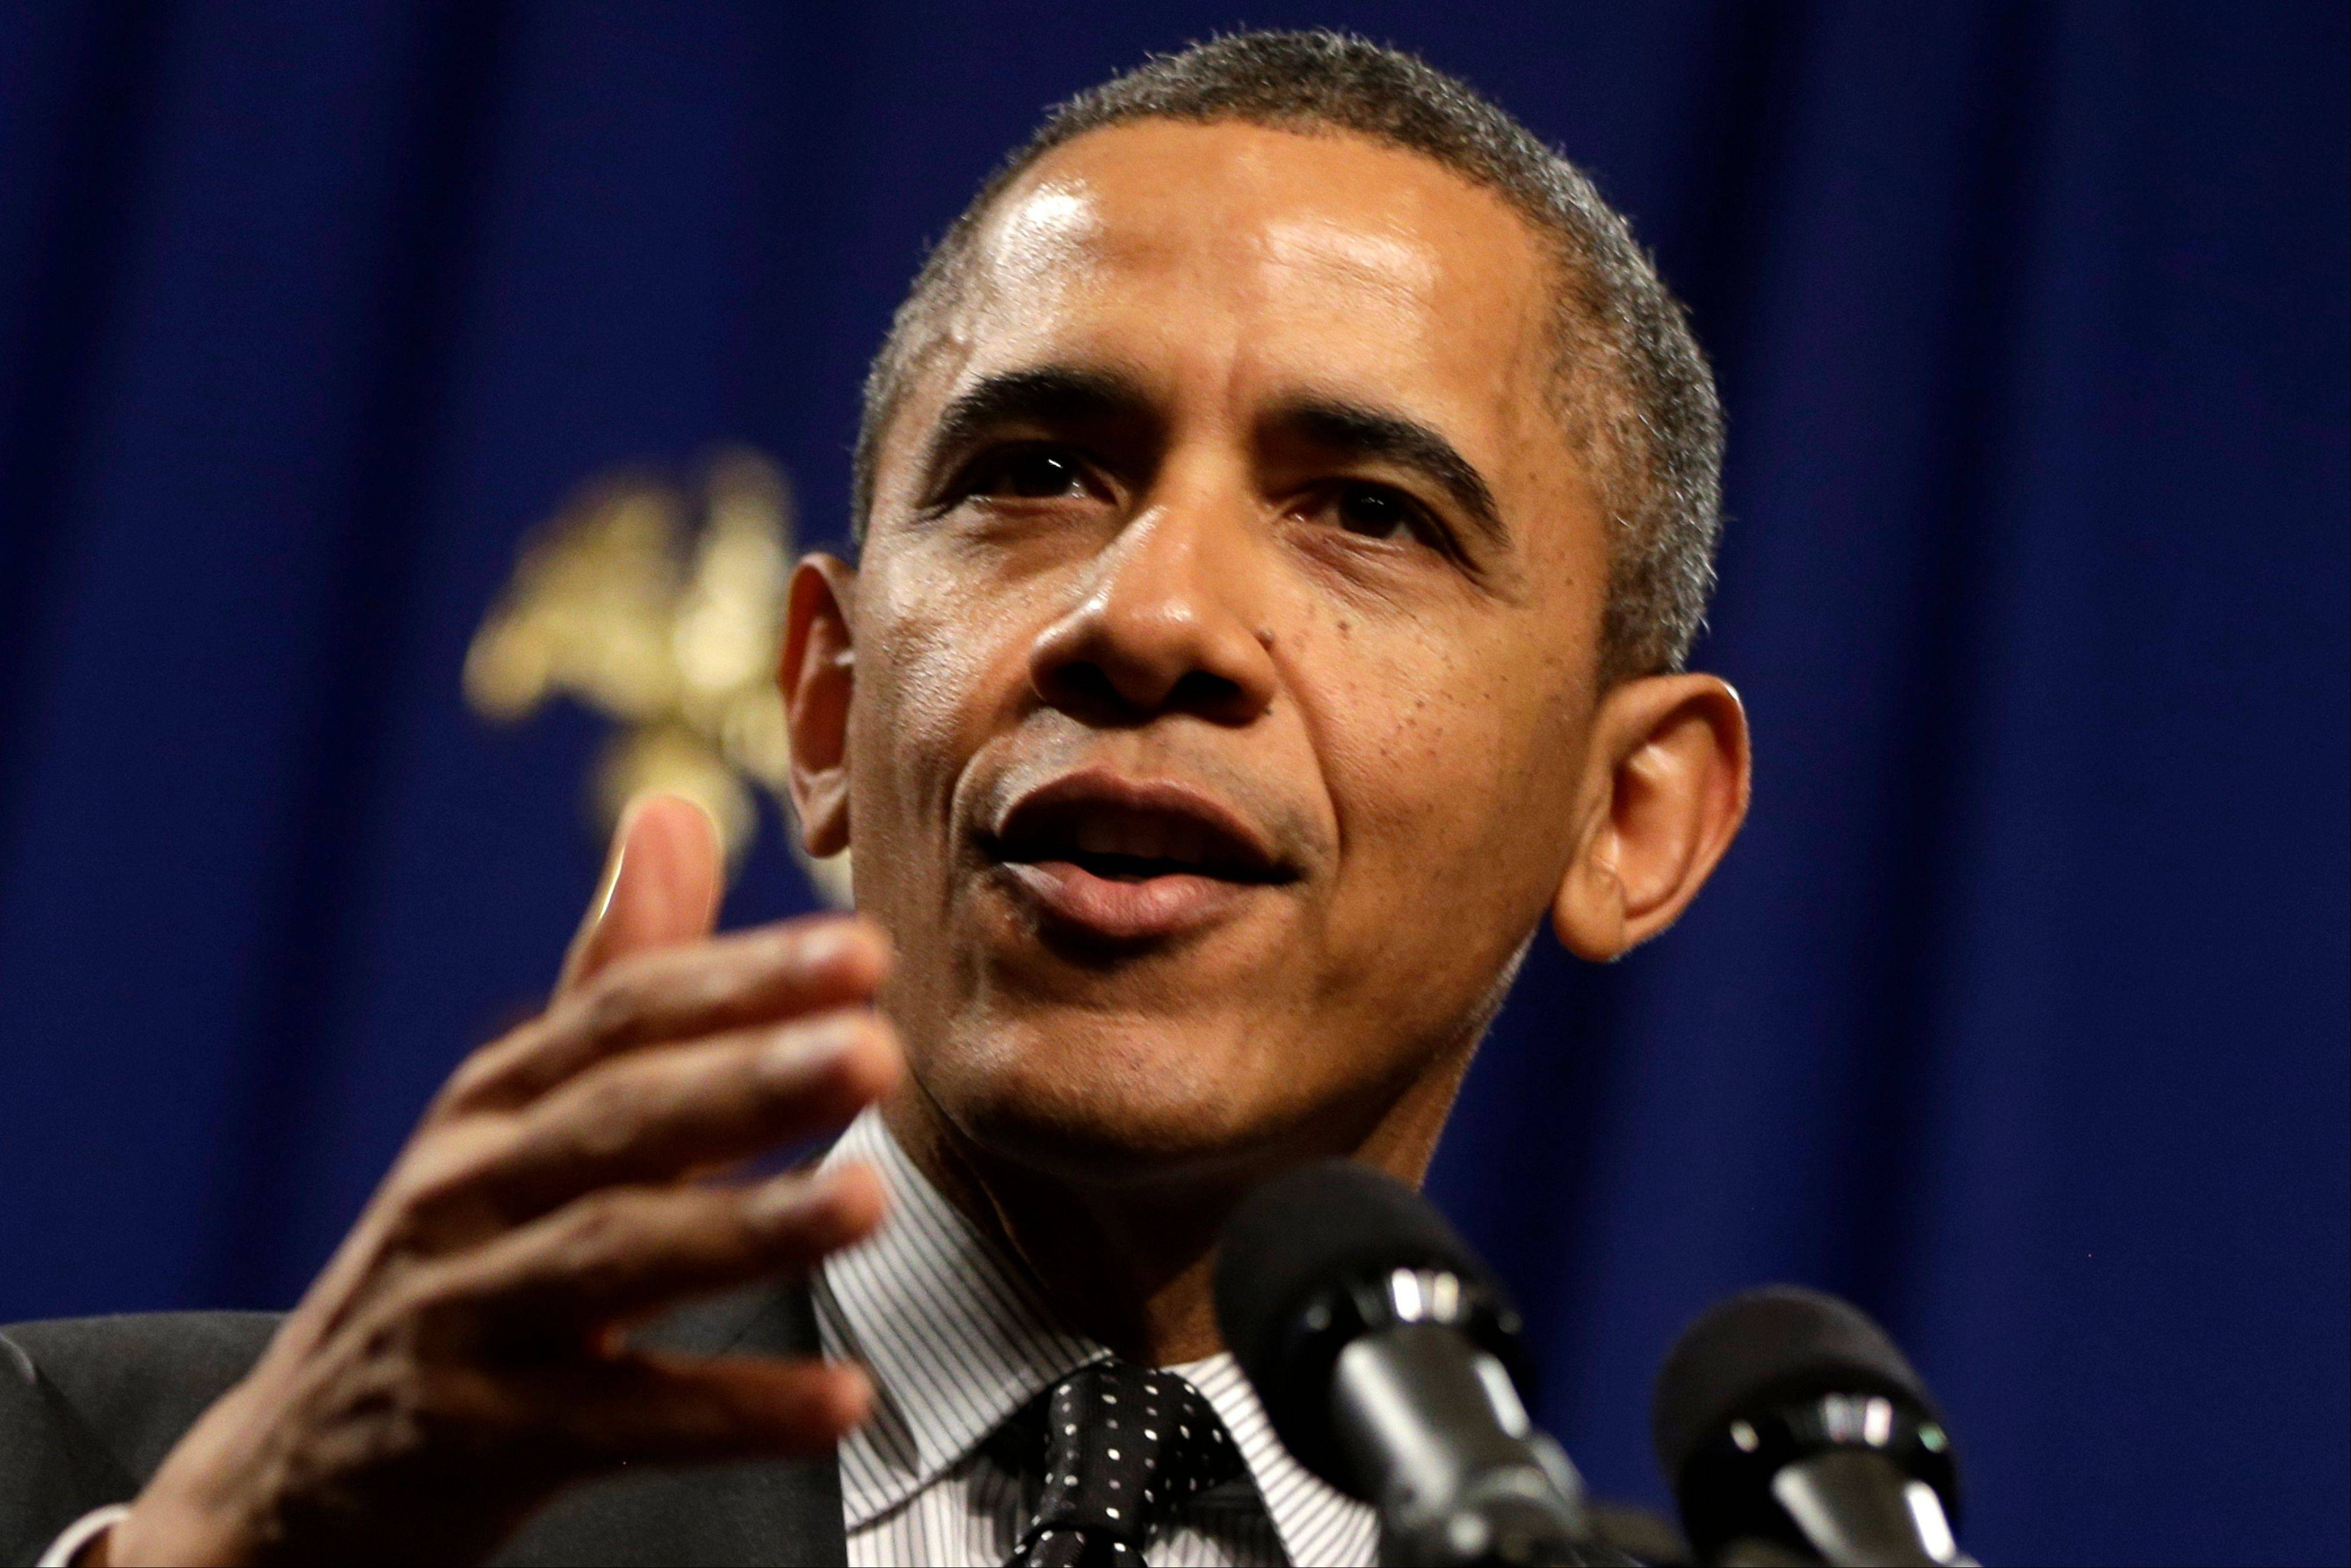 President Barack Obama speaks at the House Democratic Issues Conference in Lansdowne, Va., Thursday.